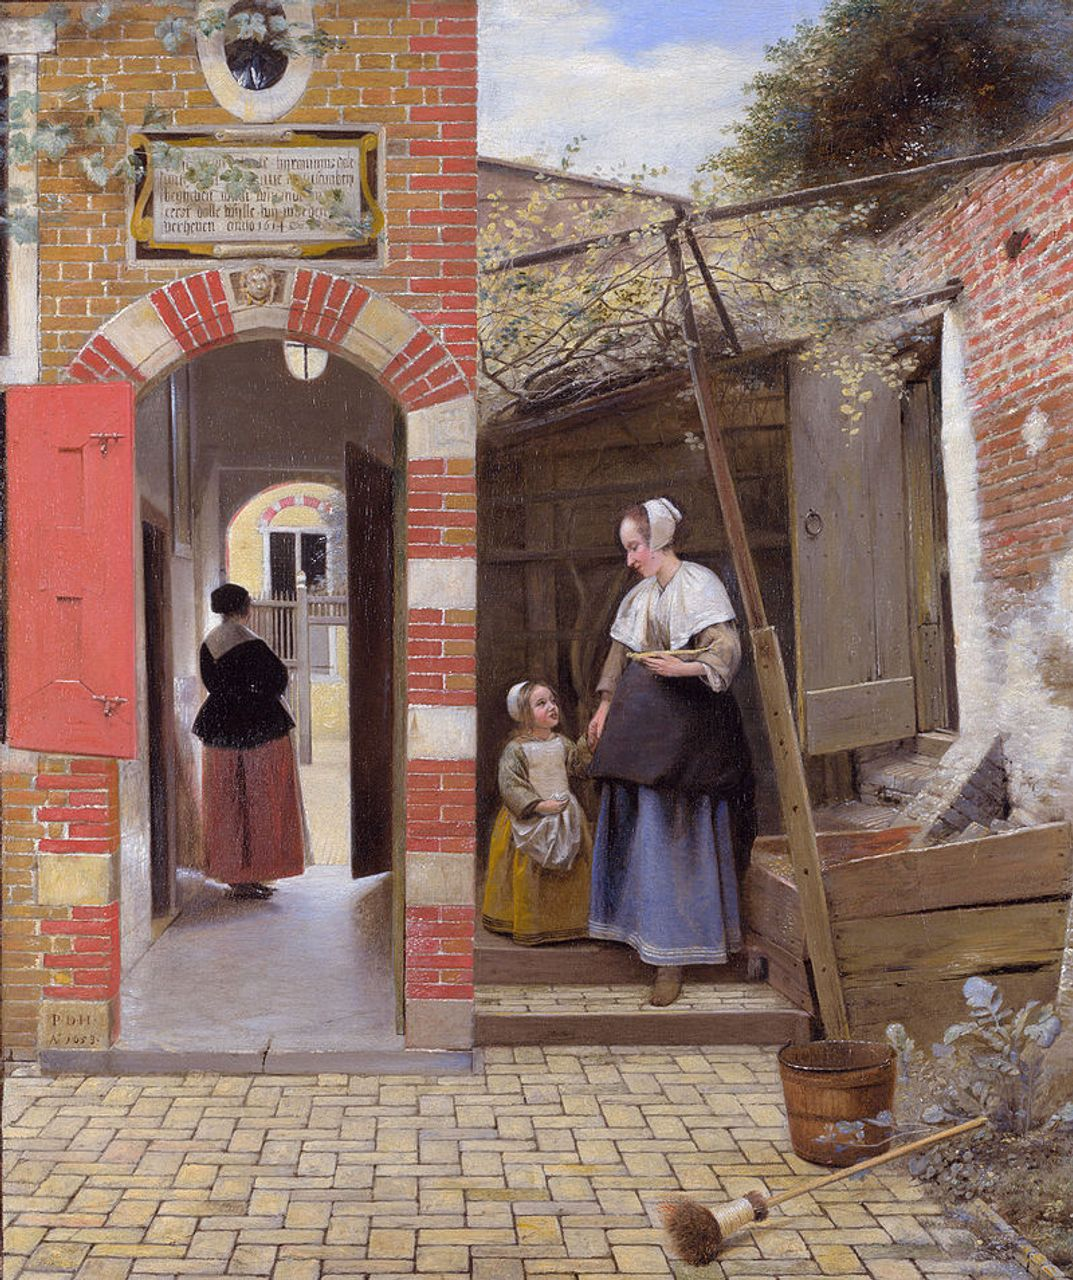 The Courtyard of a House in Delft, Pieter de Hooch, 1658, National Gallery, London